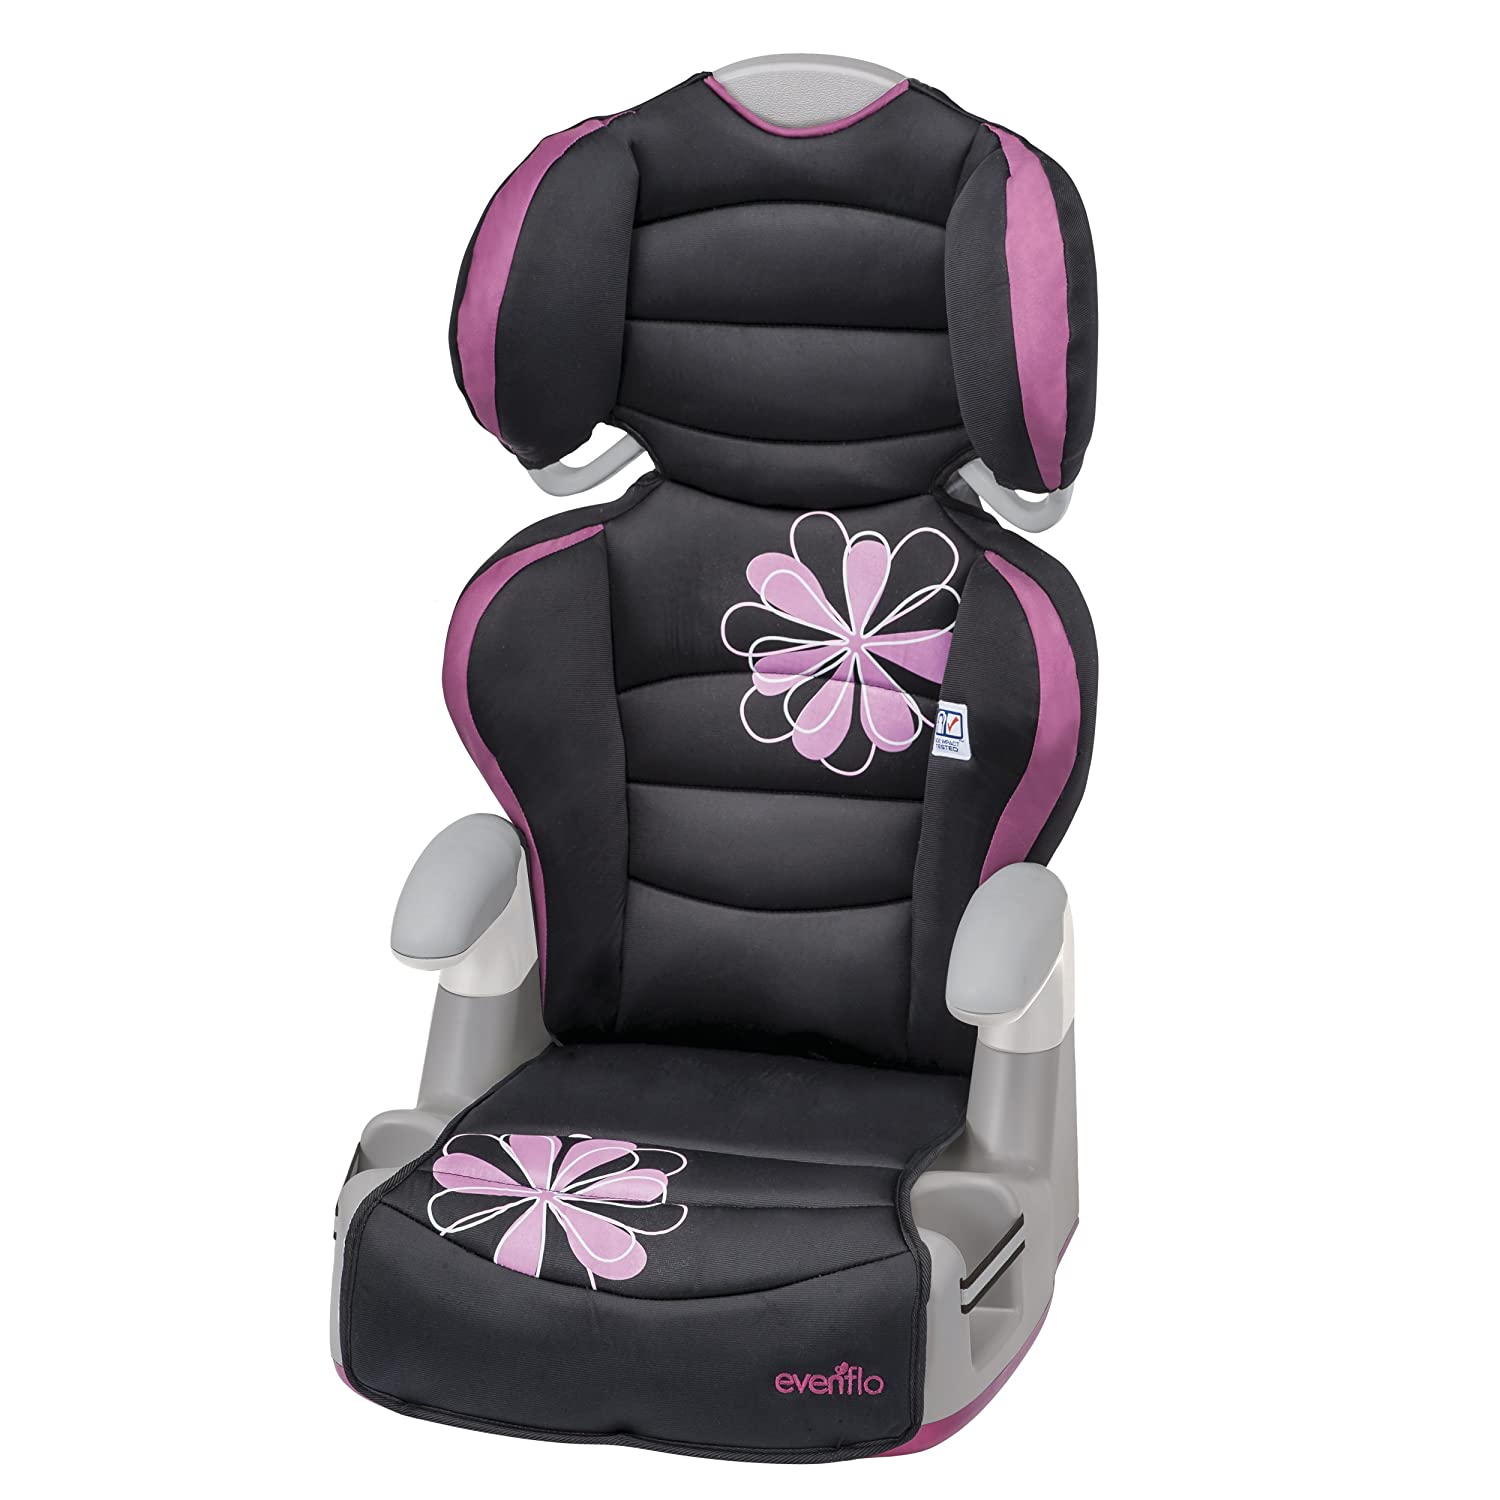 EvenFlo Big Kid High-Back Booster Seat